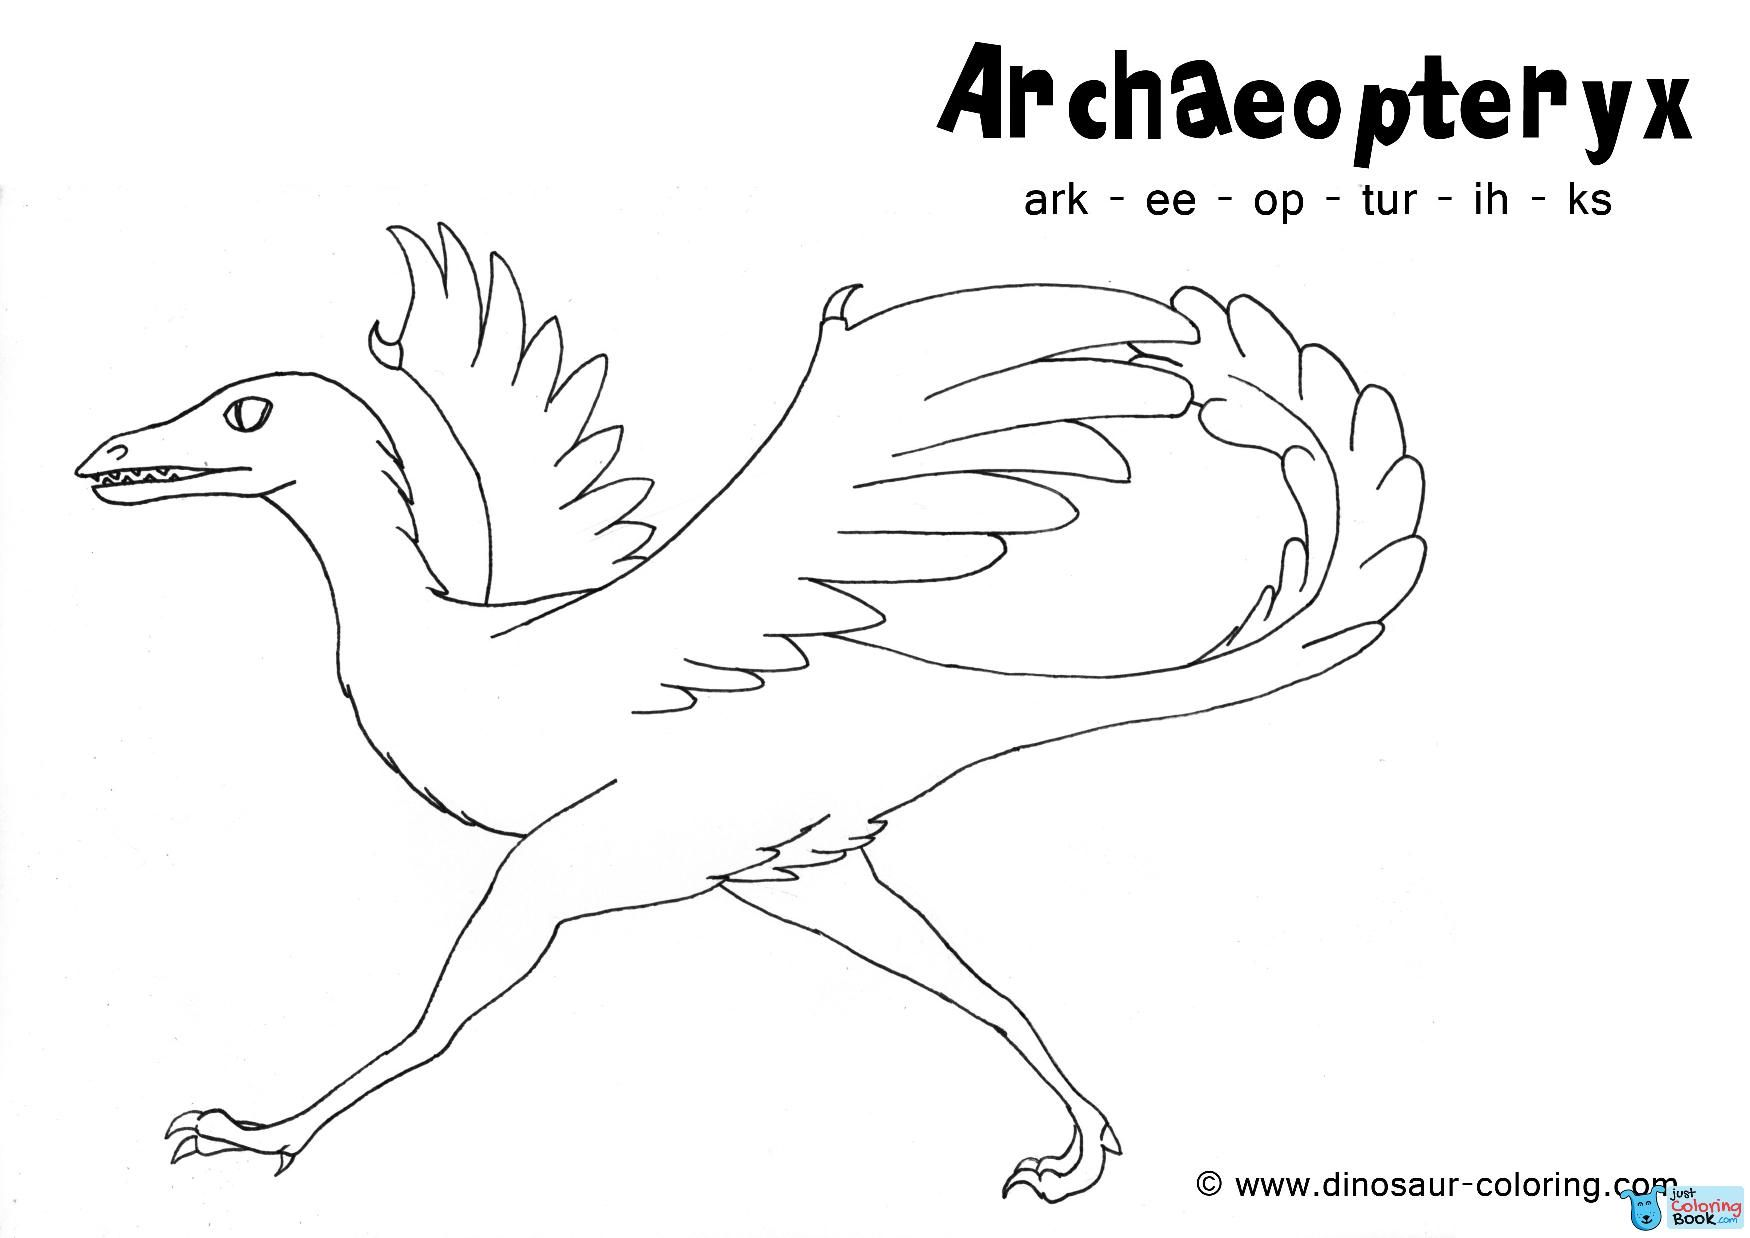 Archaeopteryx Coloring For Free Printable Archaeopteryx Jurassic